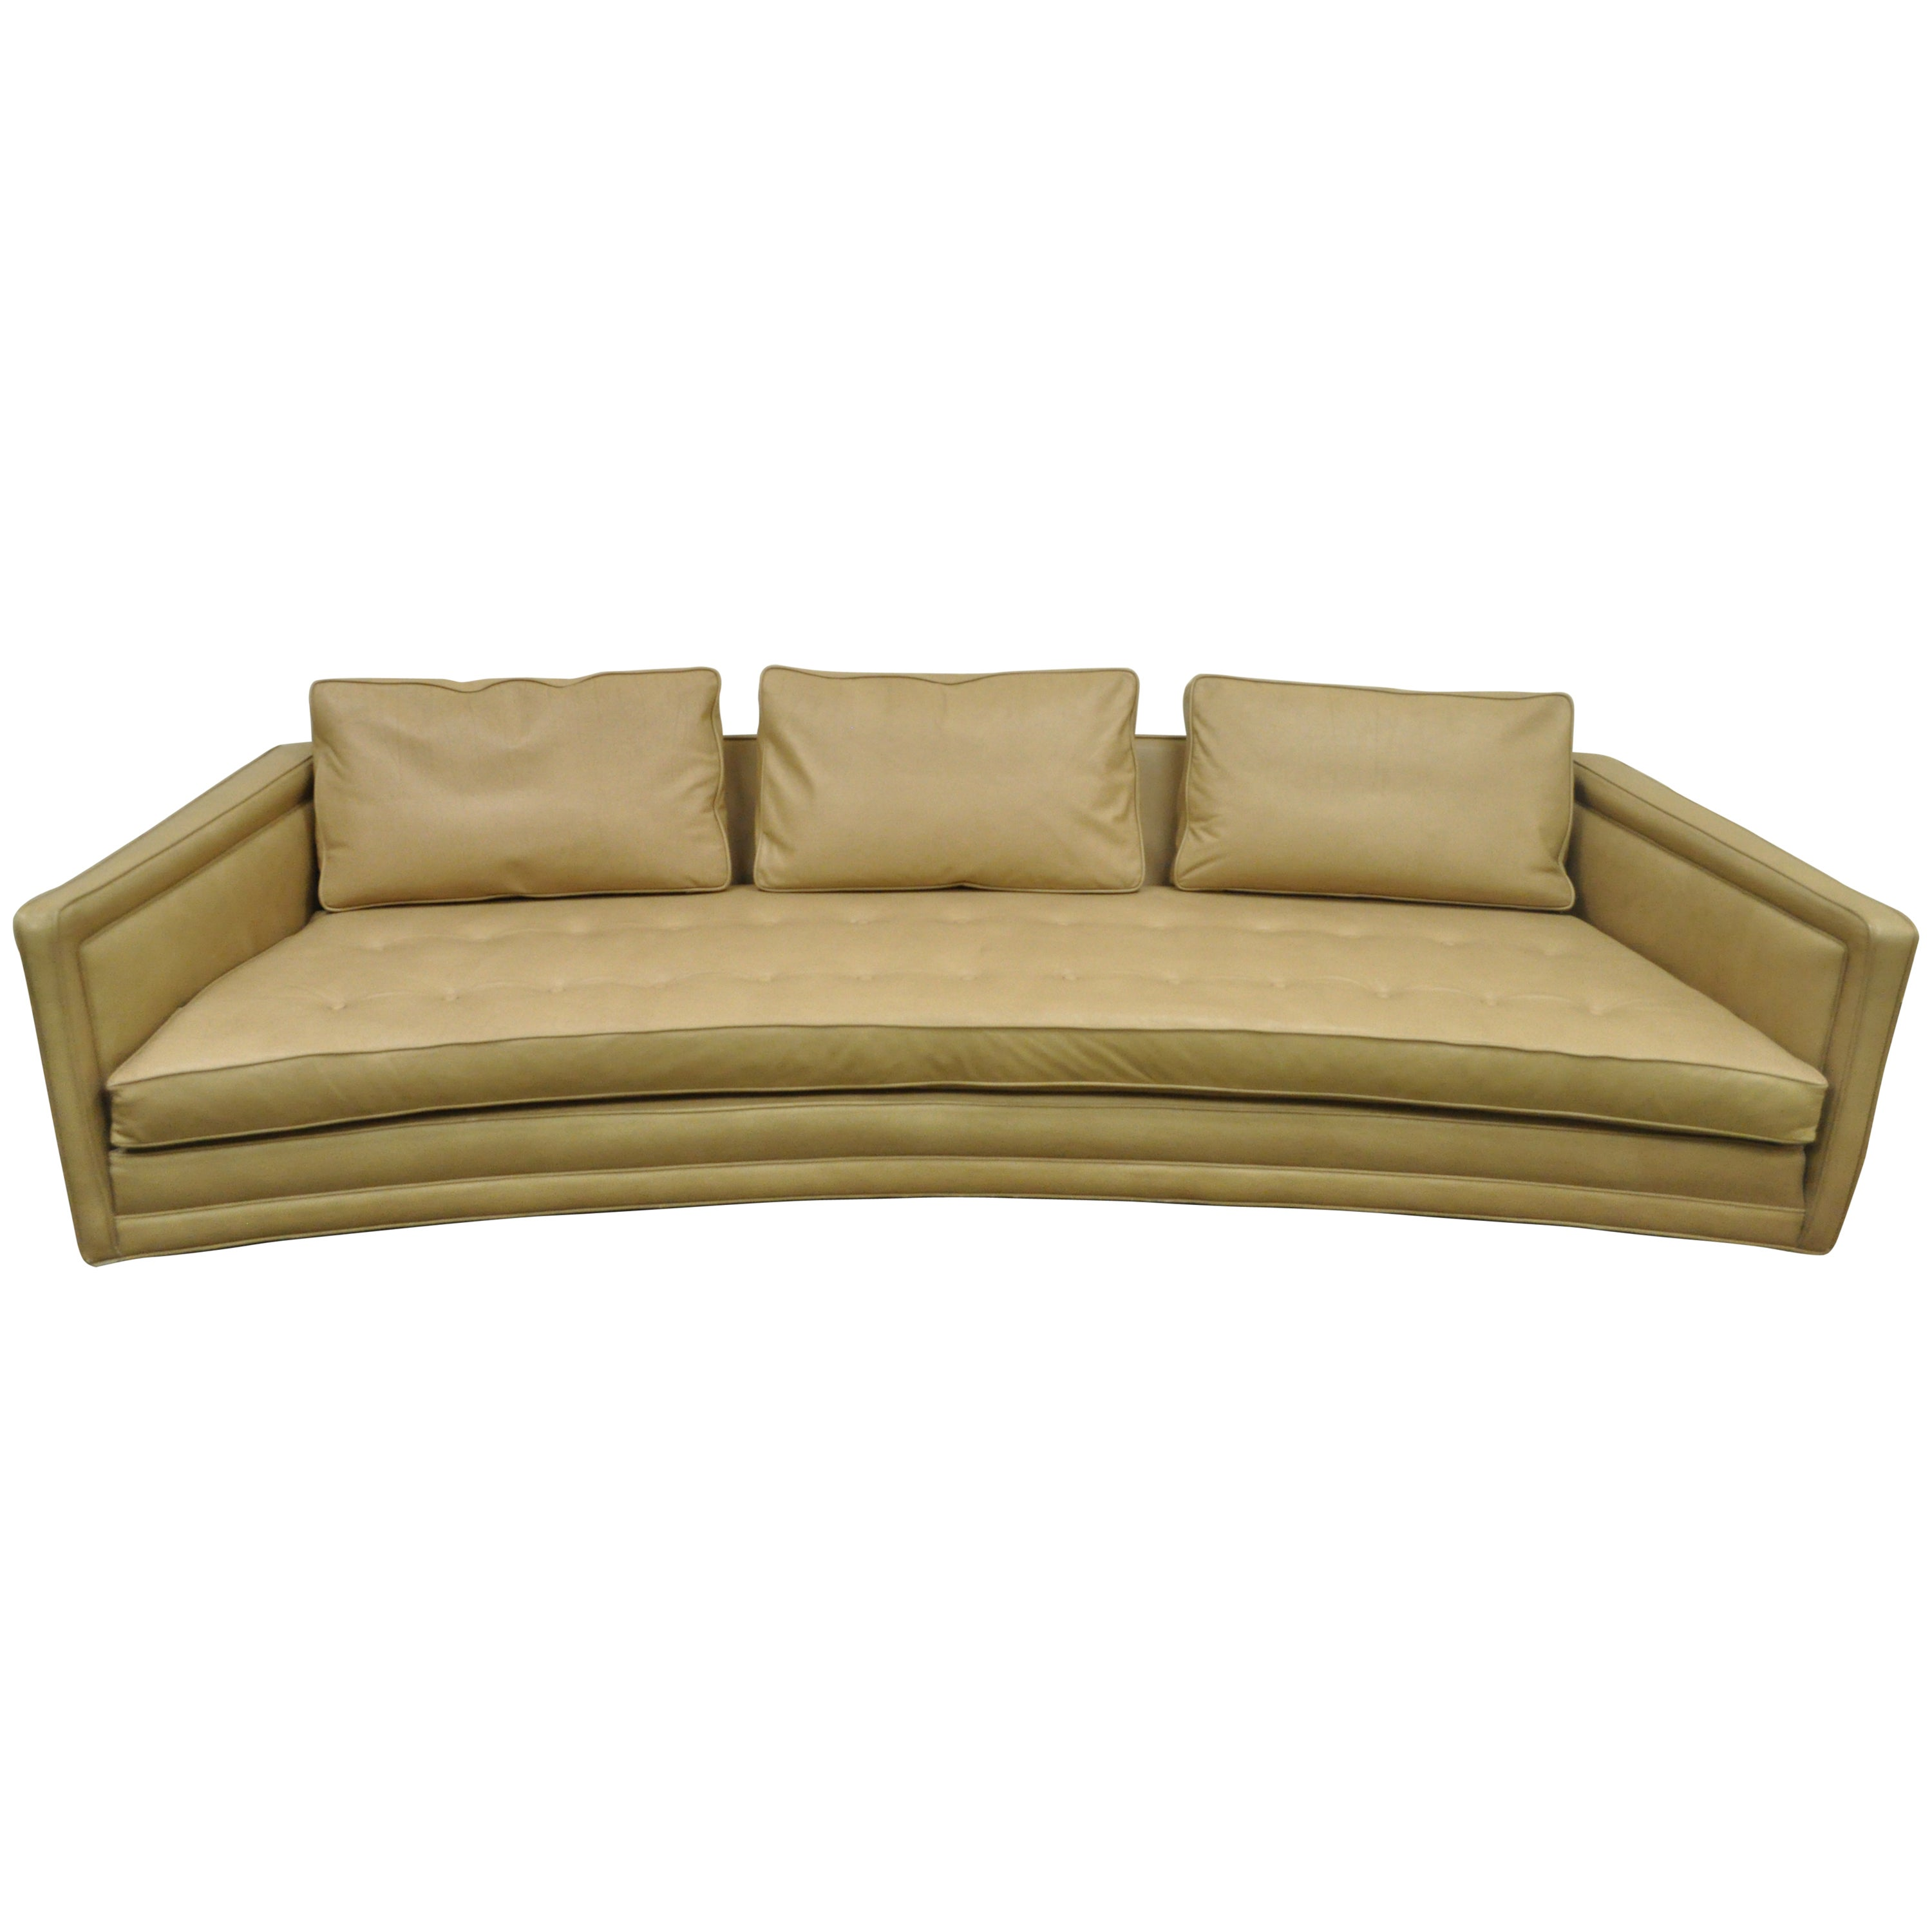 Long Curved Harvey Probber Button Tufted Leather Mid-Century Modern ...